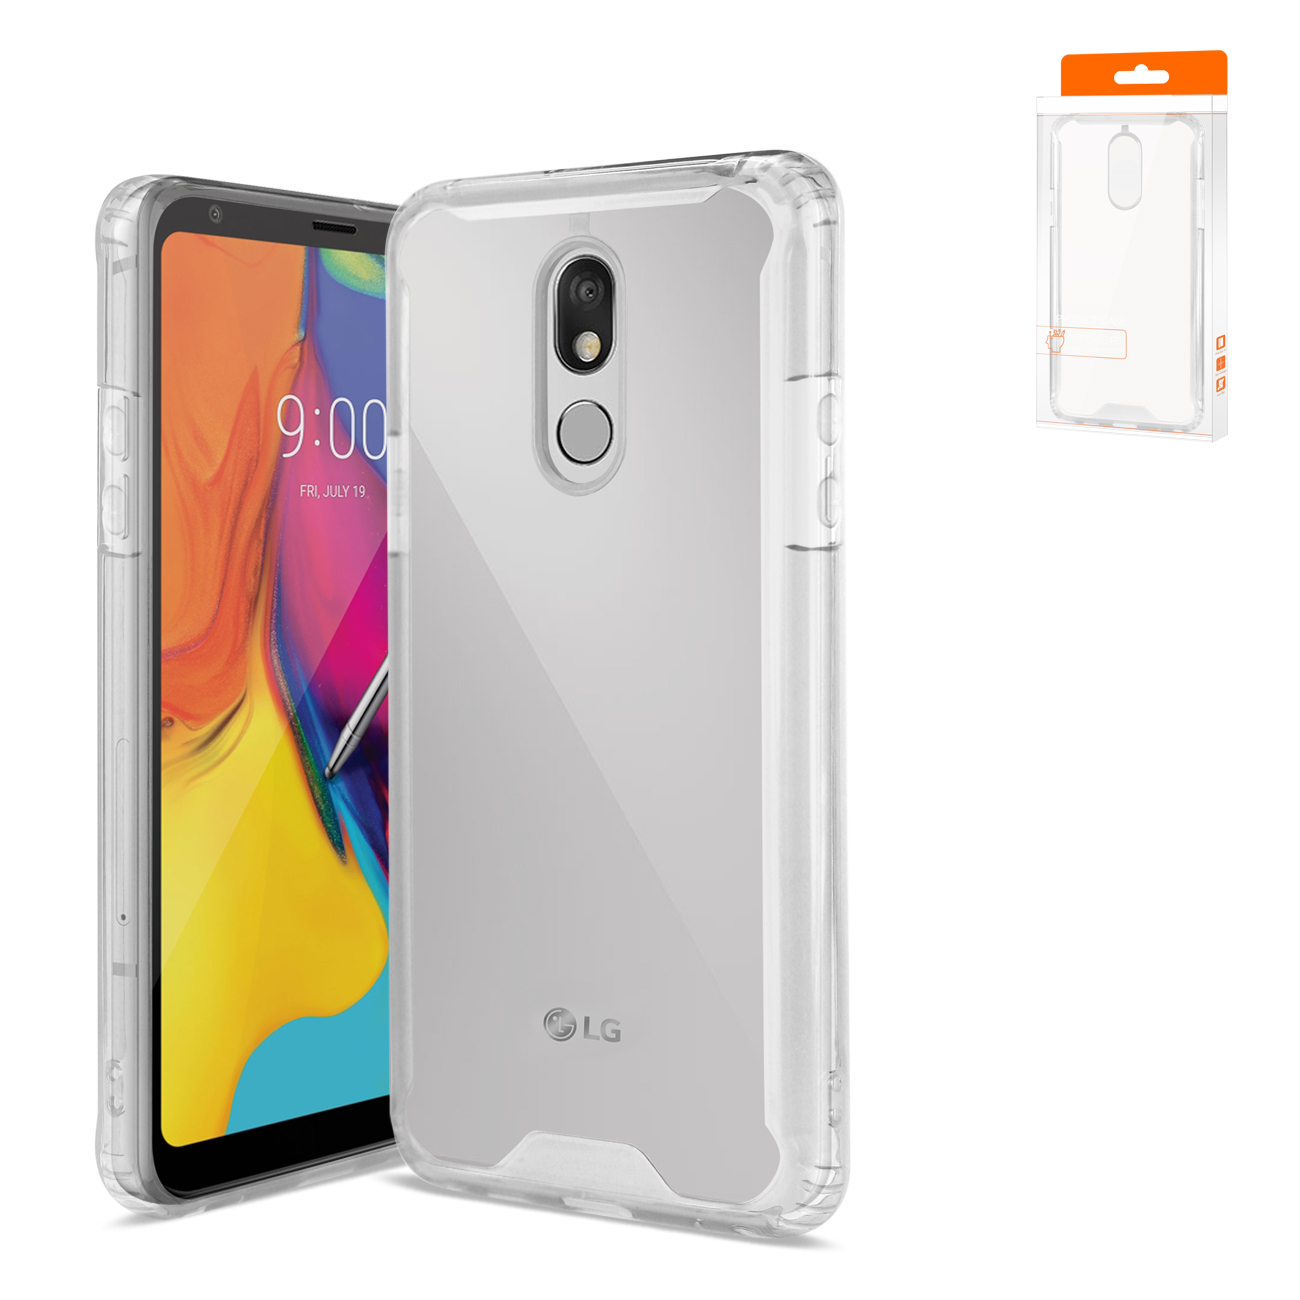 LG STYLO 5 High Quality TPU Case In Clear